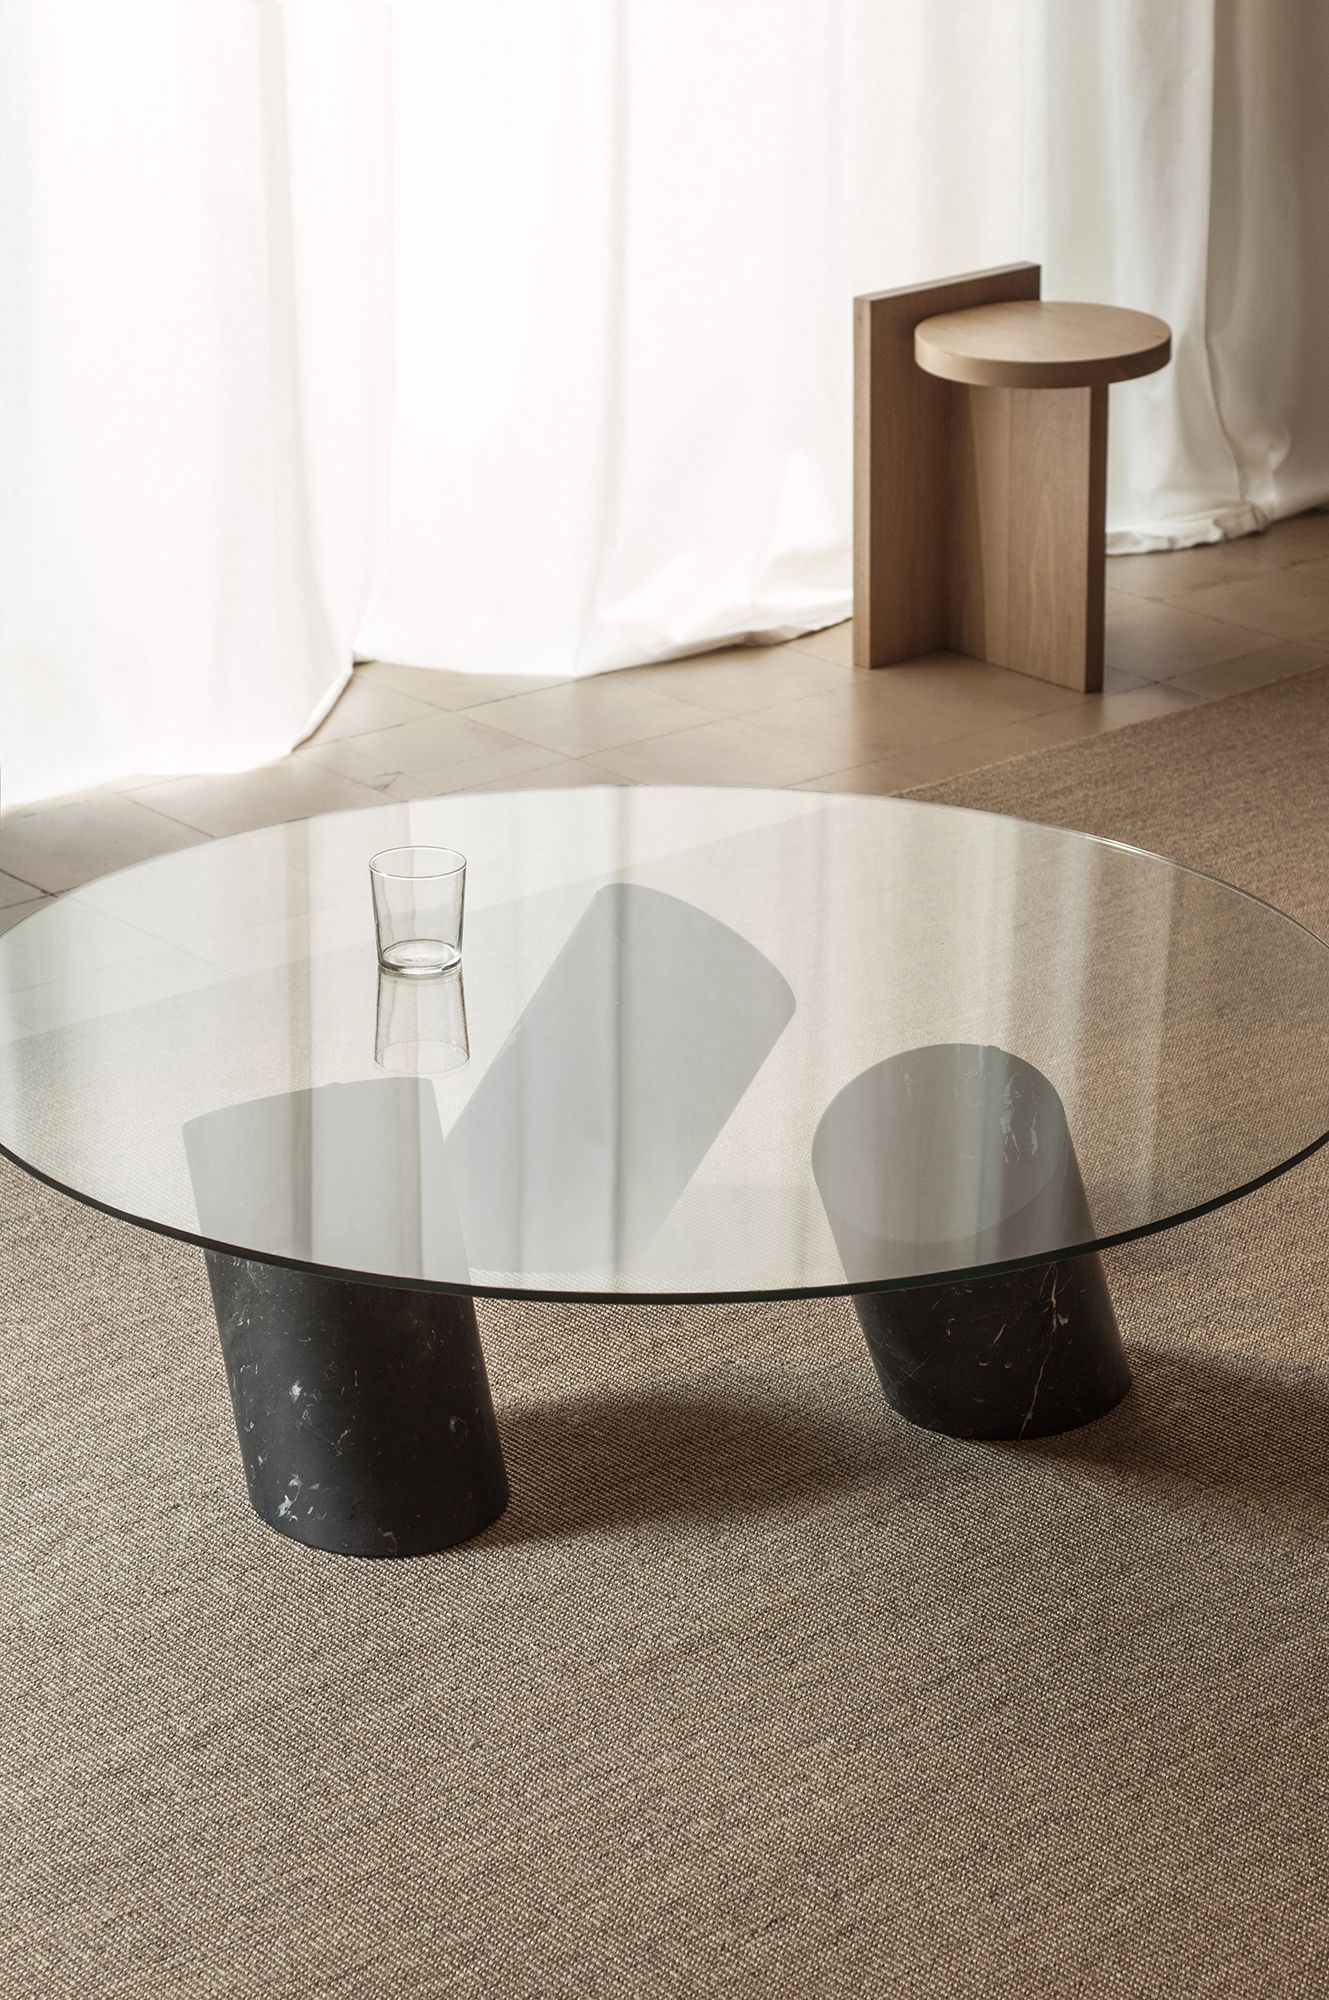 Carnac 120 Low Table Gofi Minimalist Furniture Furniture Collection Contemporary Coffee Table [ 2000 x 1329 Pixel ]